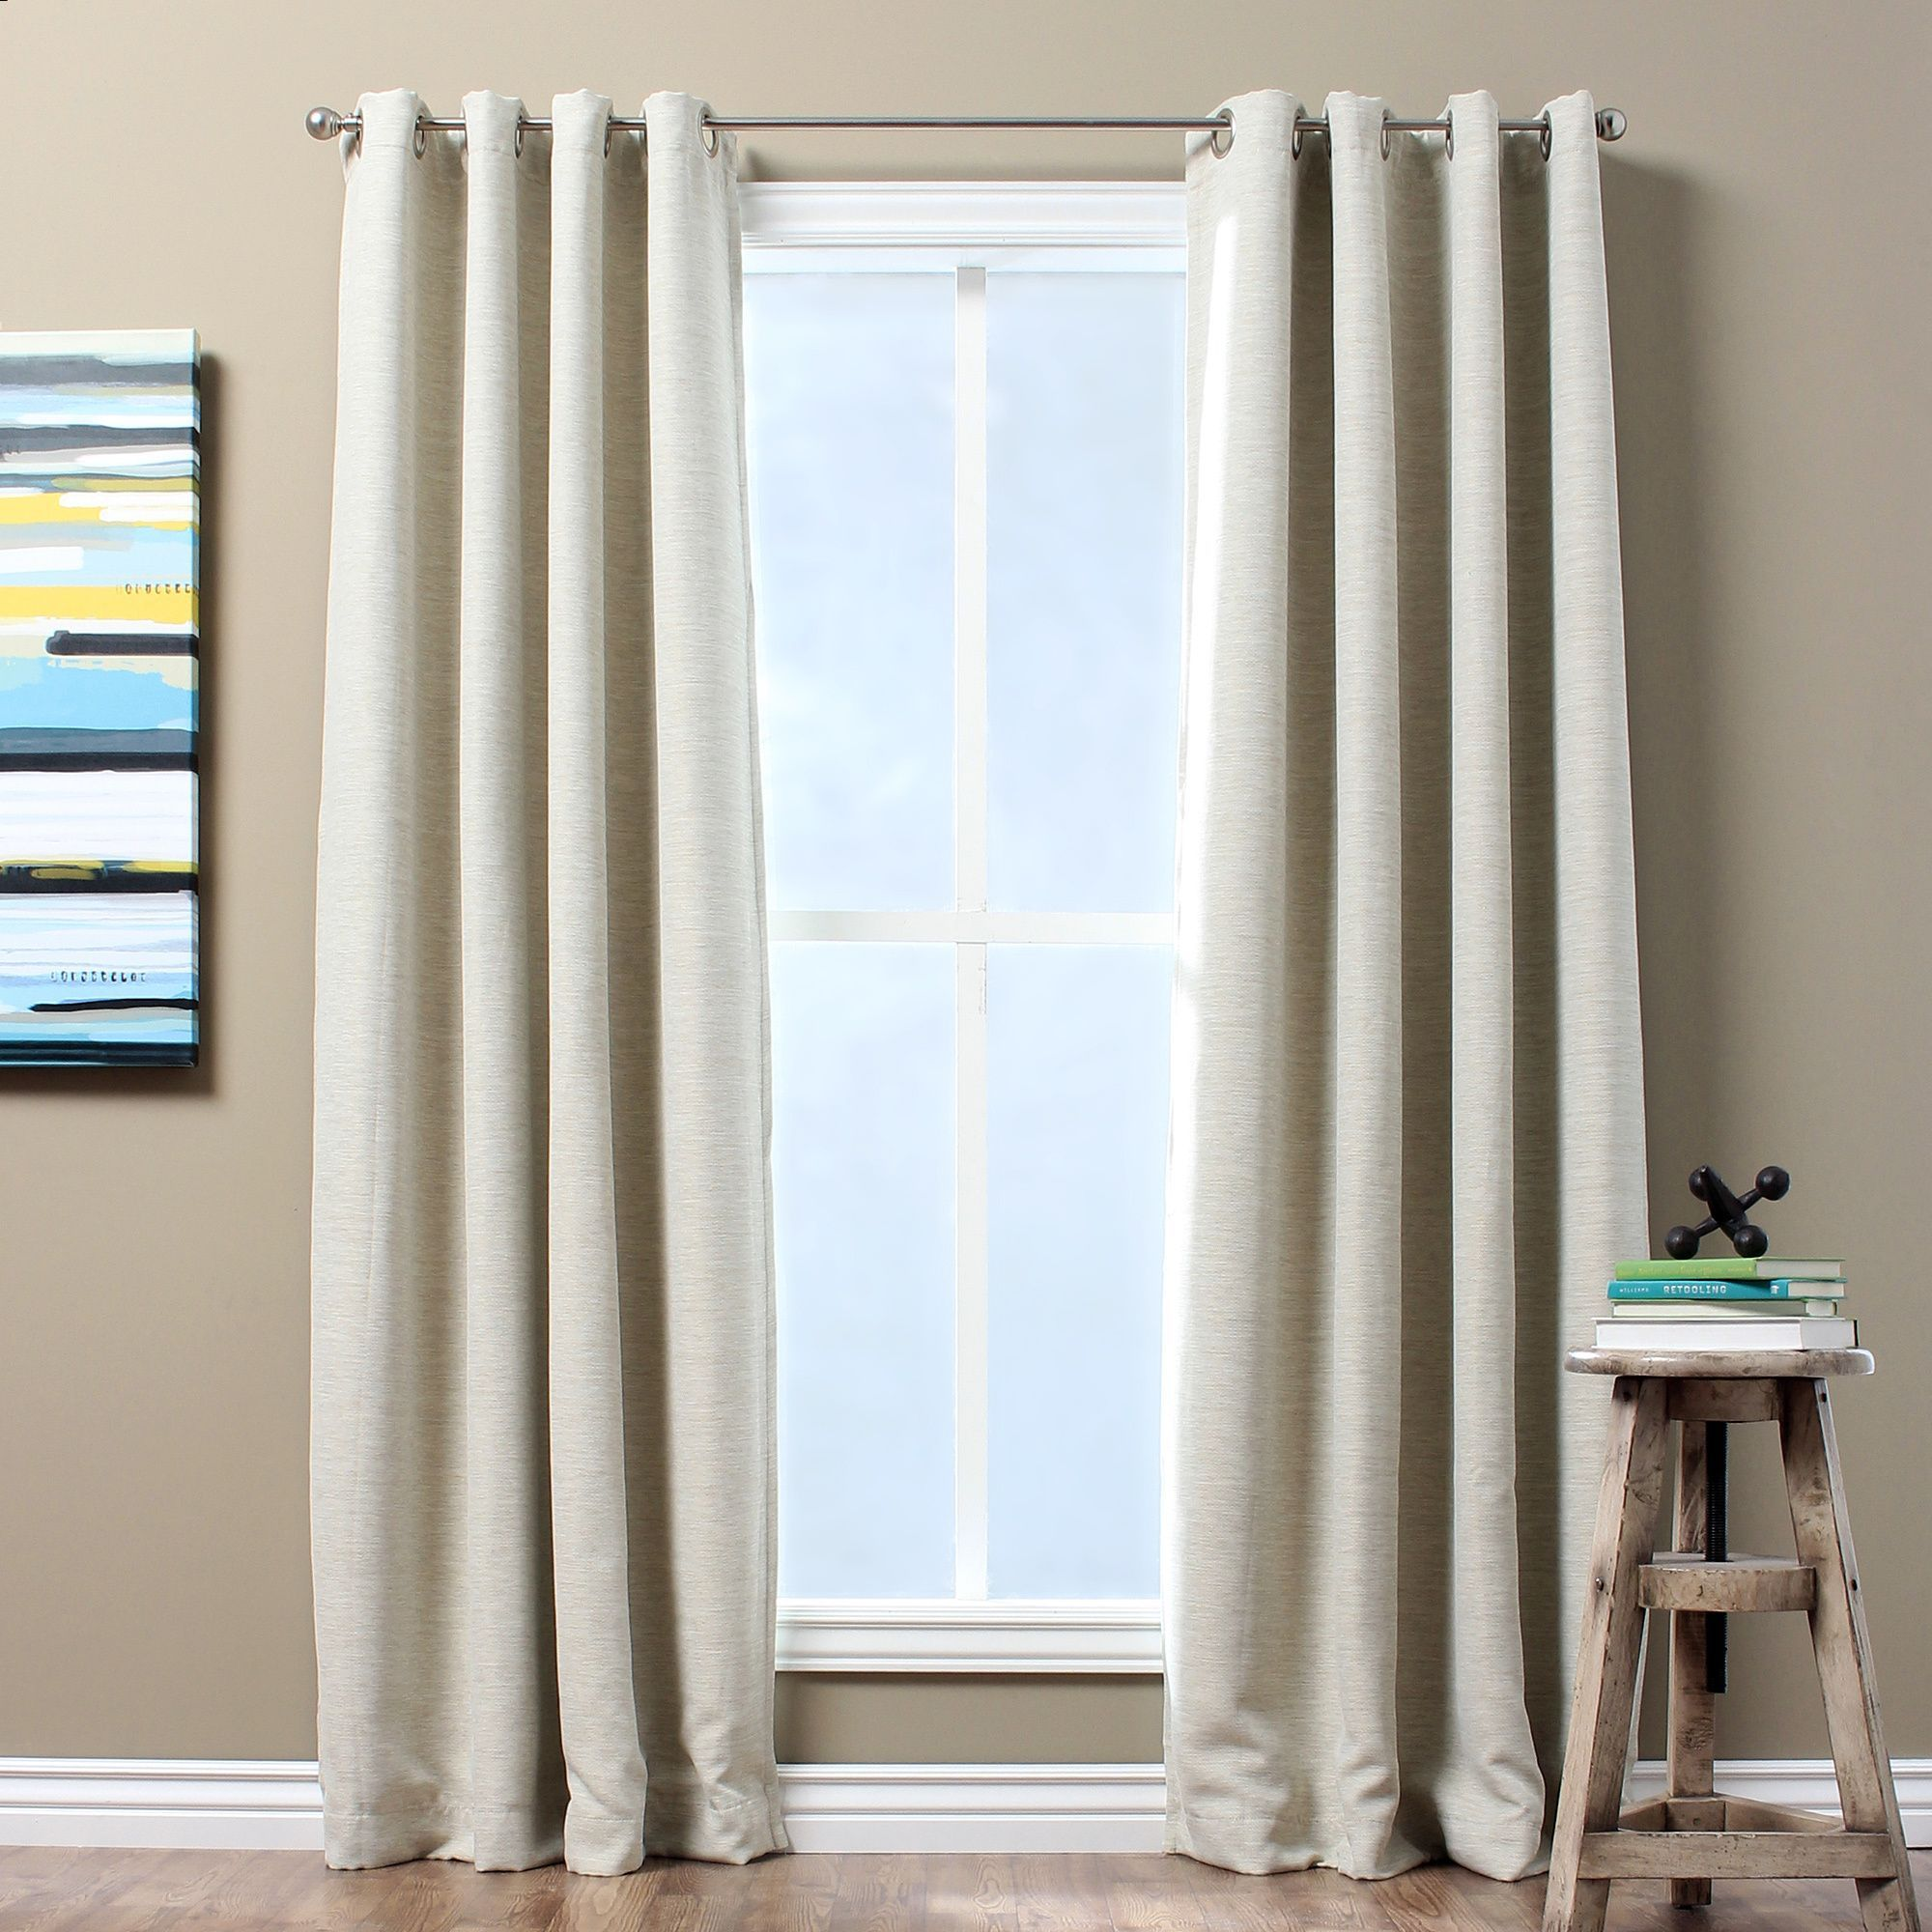 Solid Textured Insulated Thermal Blackout Curtain Panel Panel